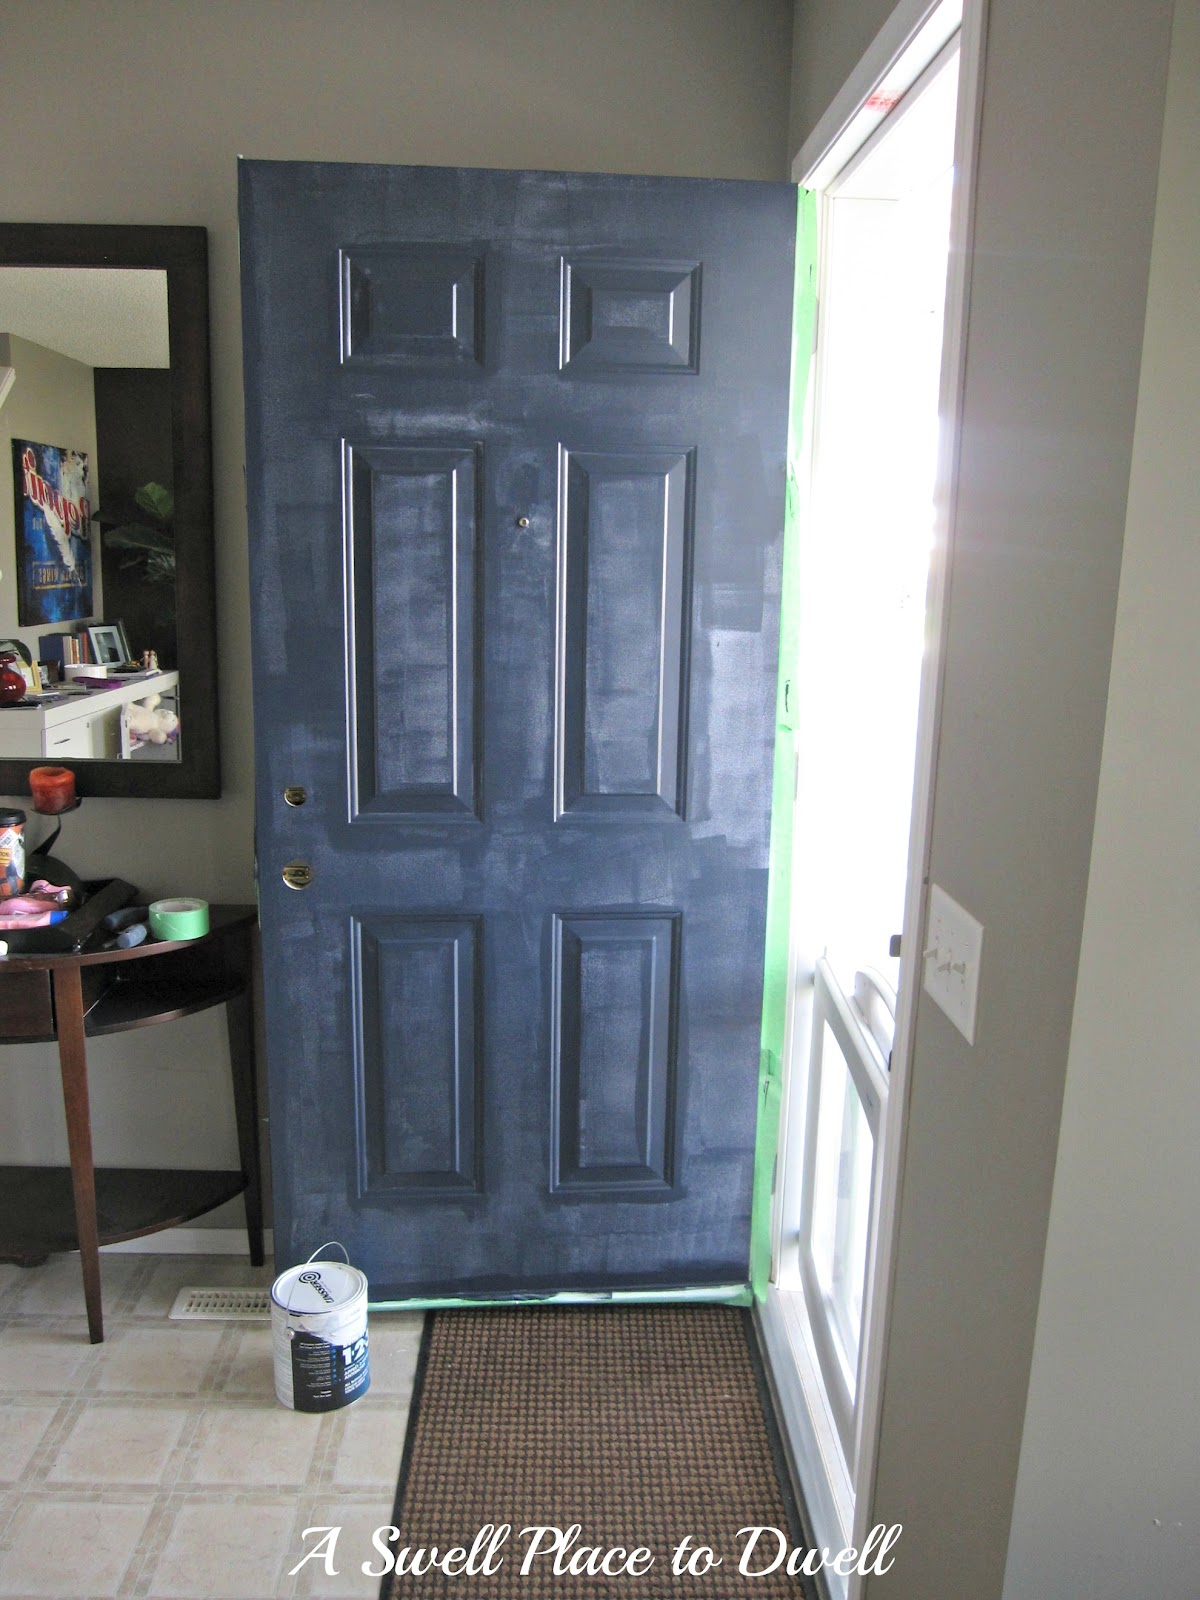 Dark blue front doors - I Used The Same Method With The Navy Blue Exterior Paint Cut In First And Then Used A Foam Roller